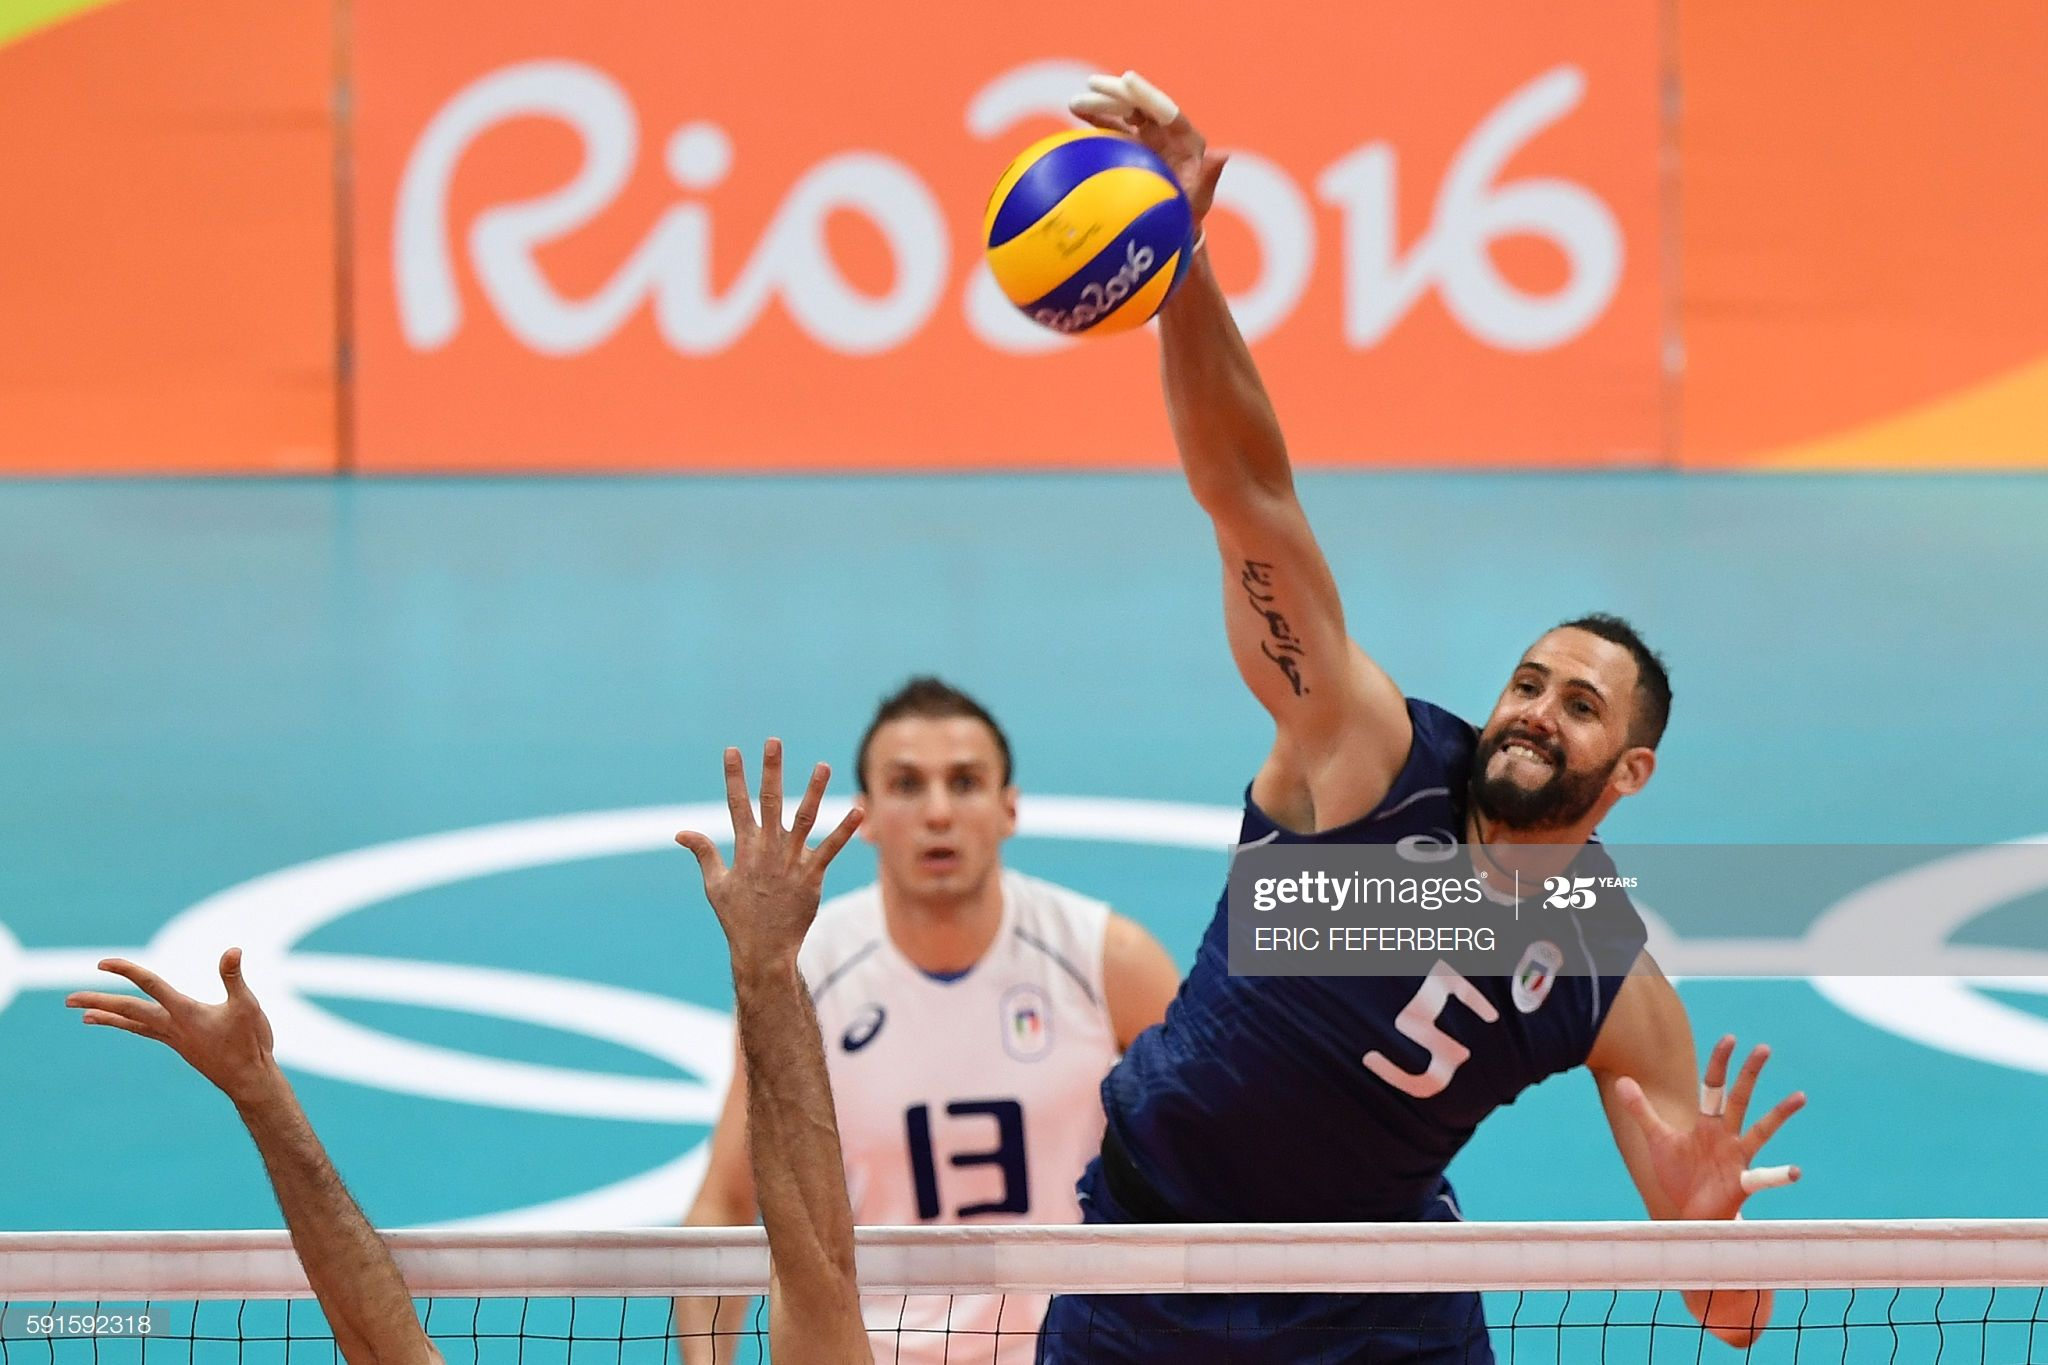 Italy S Osmany Juantorena Spikes The Ball During The Men S In 2020 Olympic Games Olympics 2016 Rio Olympics 2016